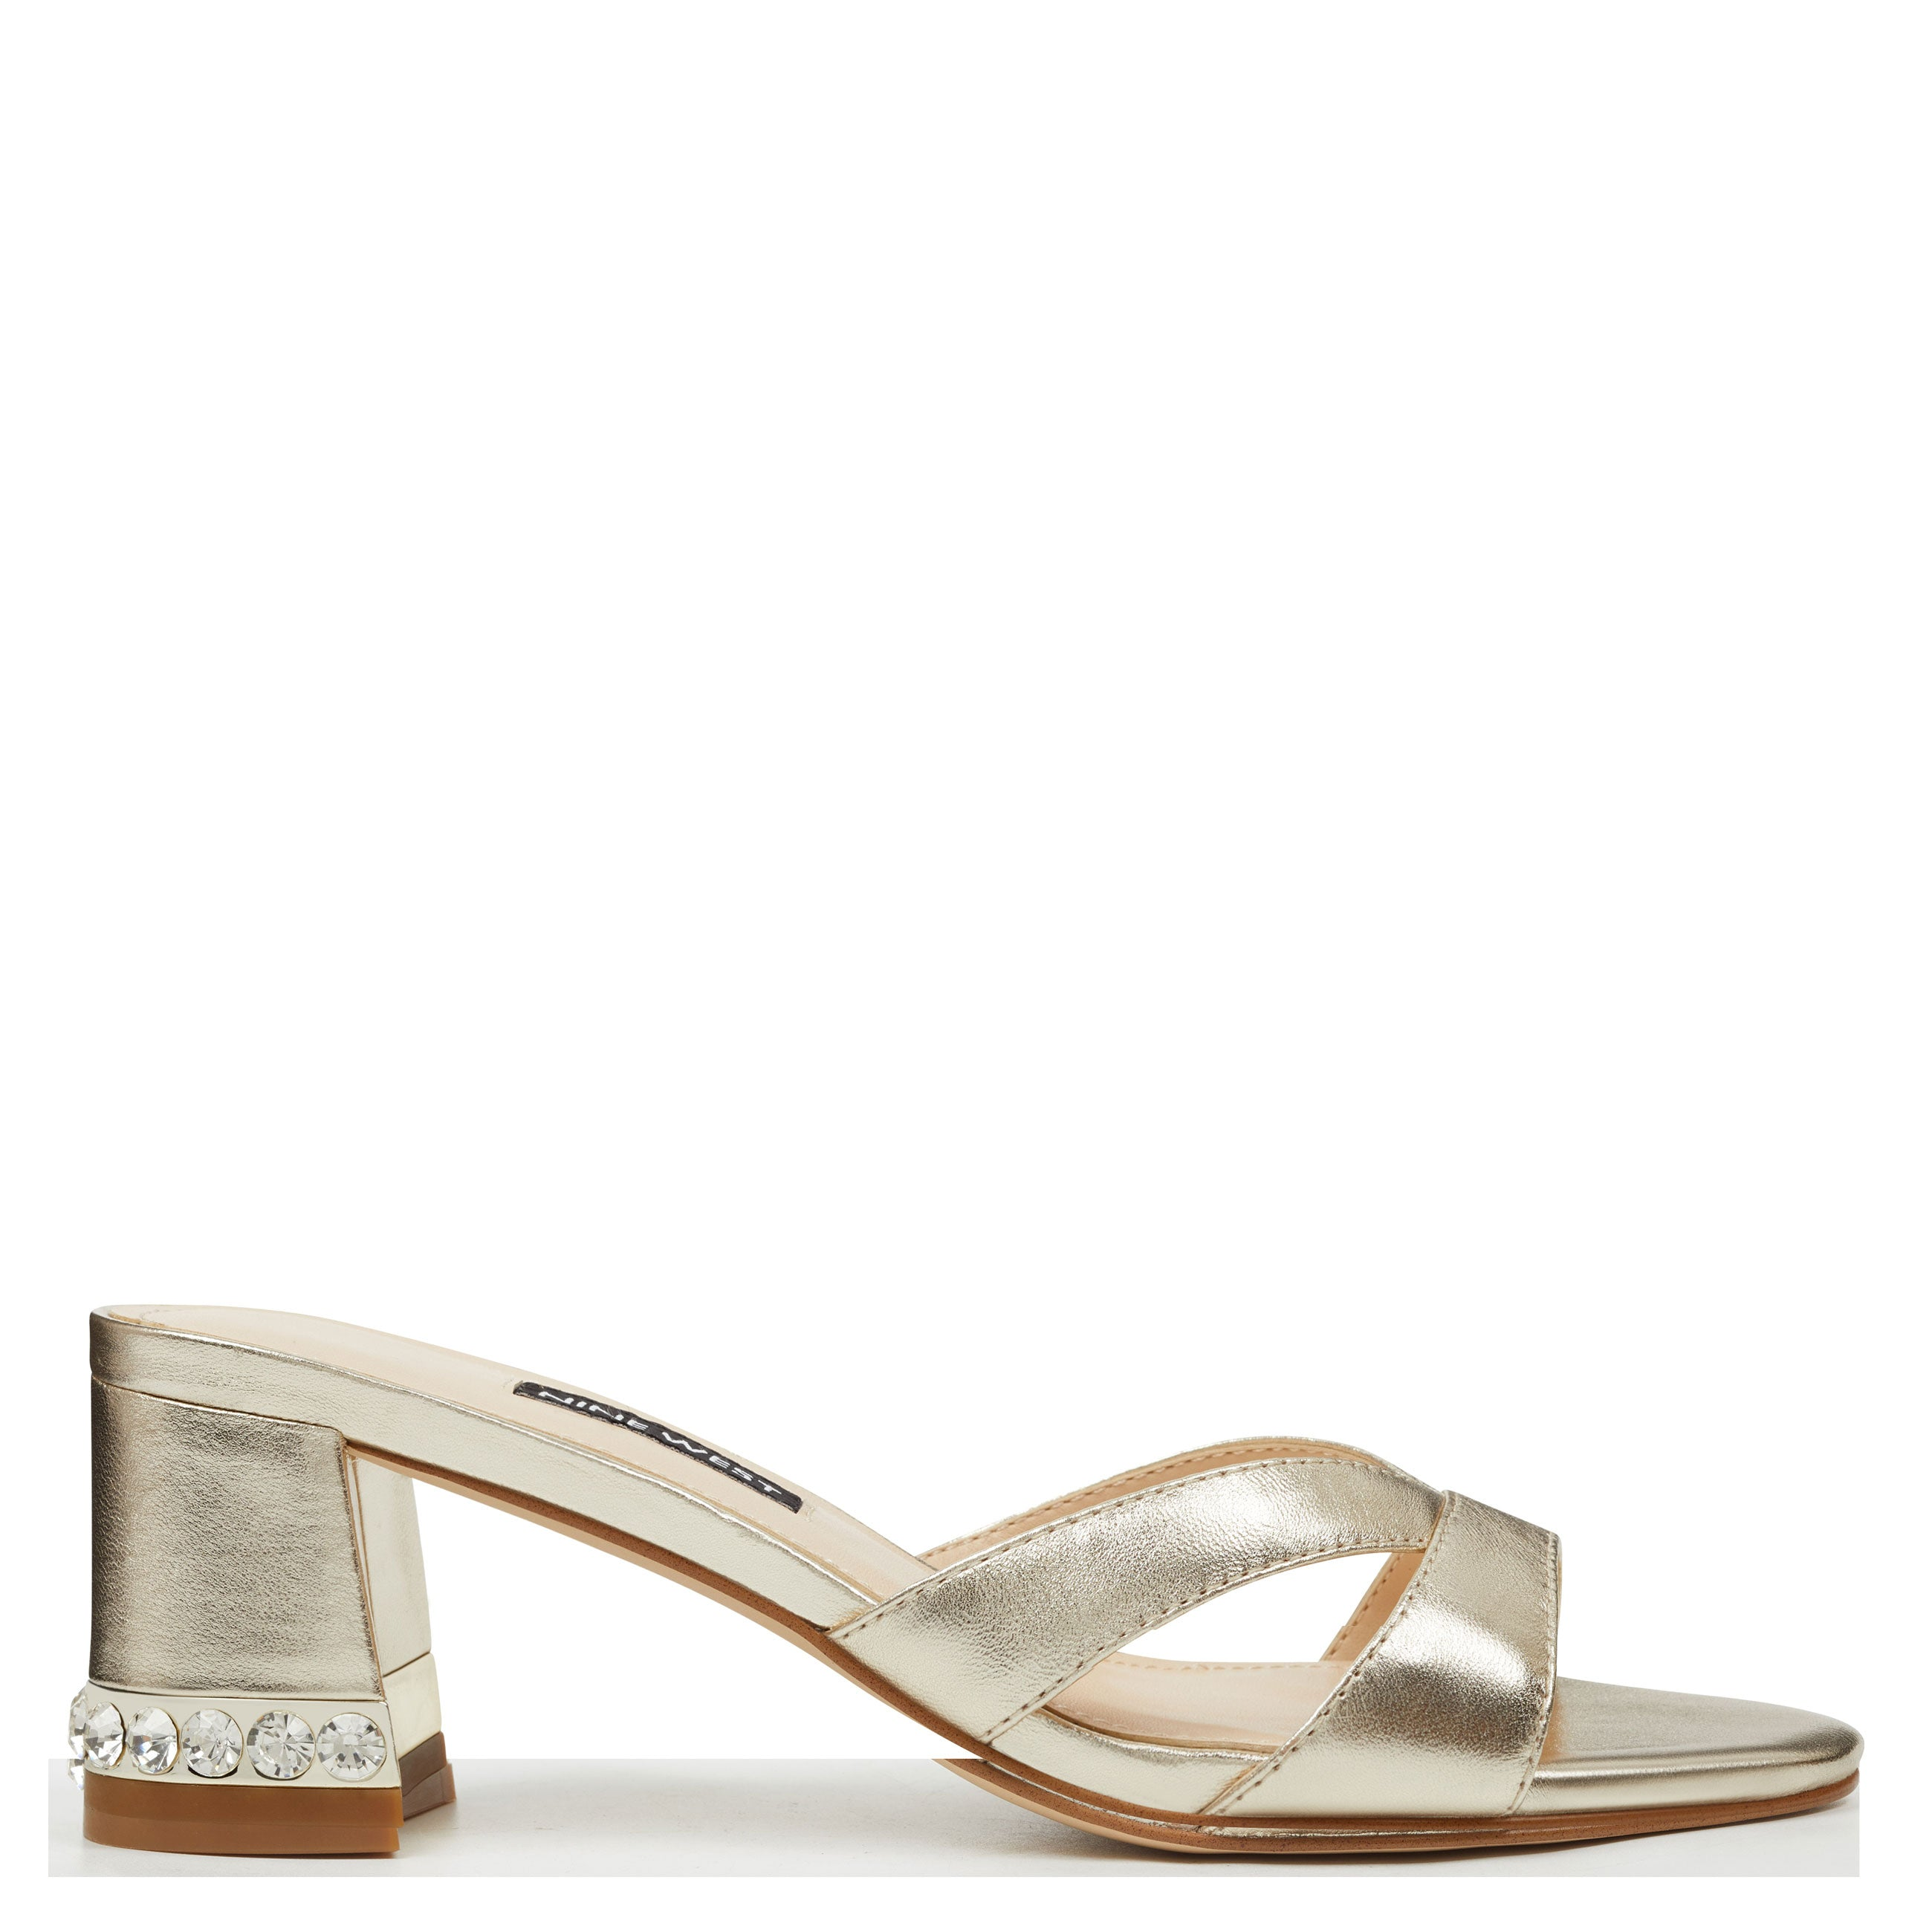 NINEWEST Hannah Slide Sandals